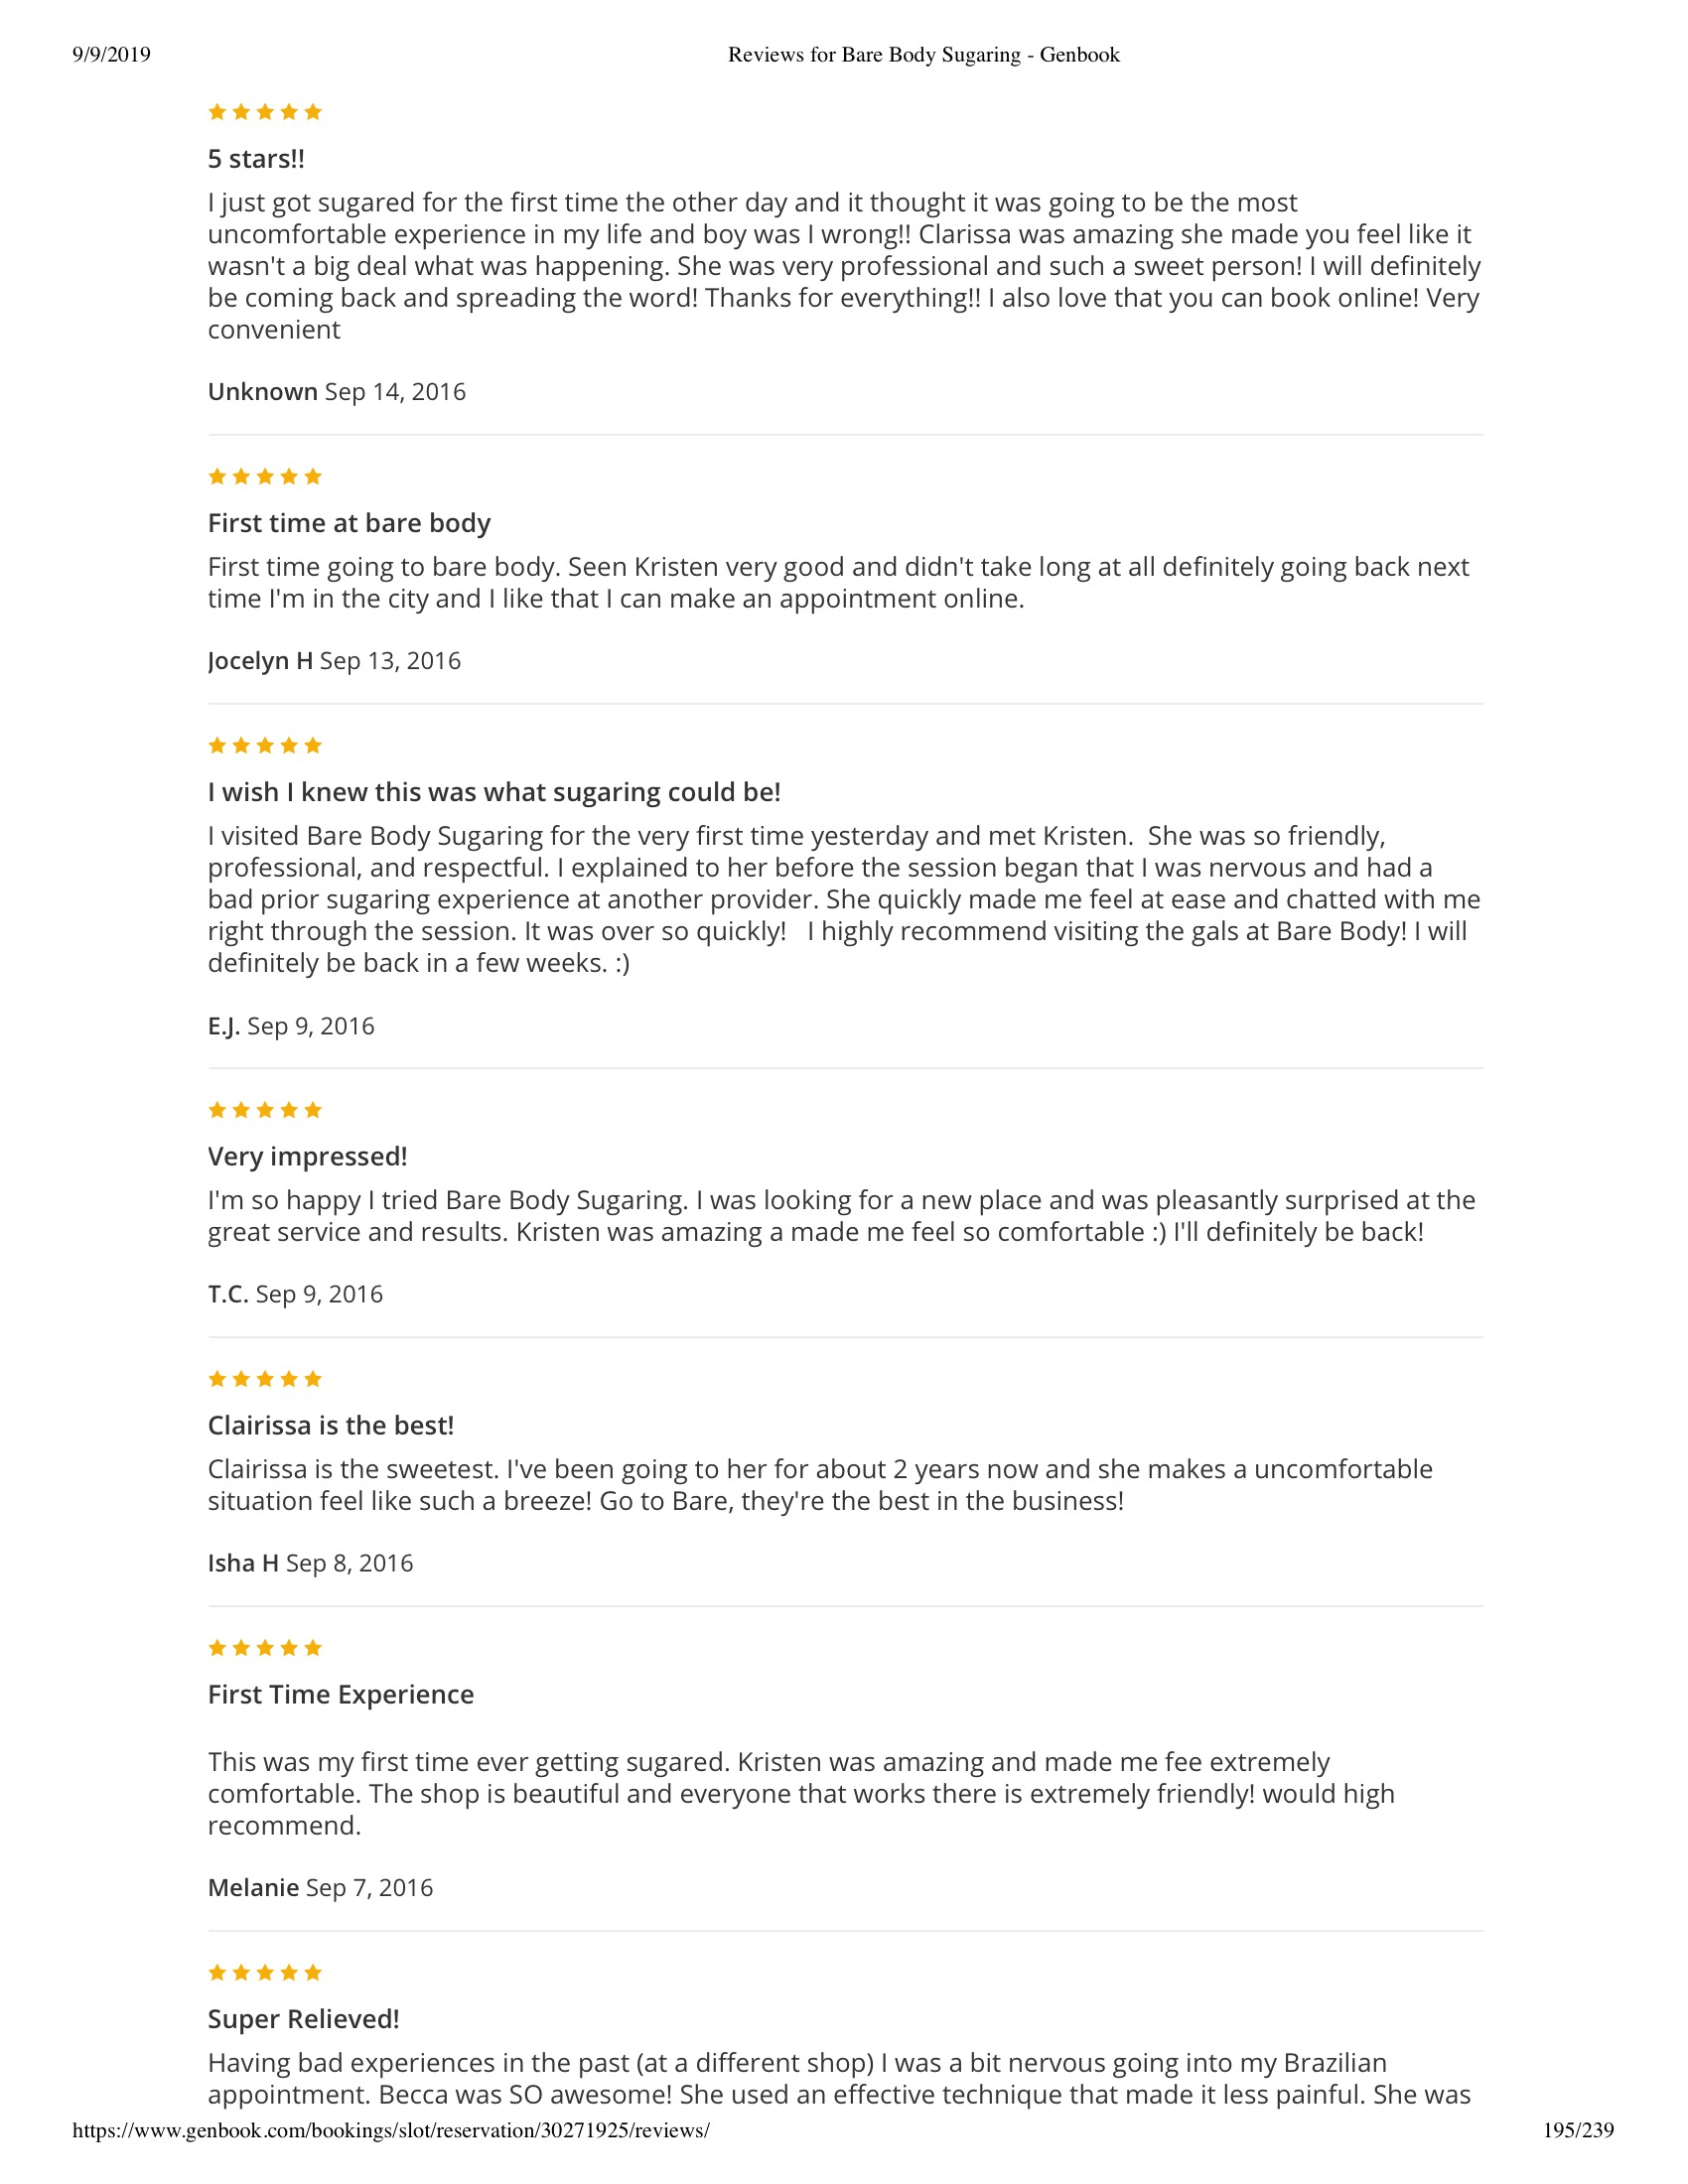 Reviews for Bare Body Sugaring - Genbook 195.jpeg